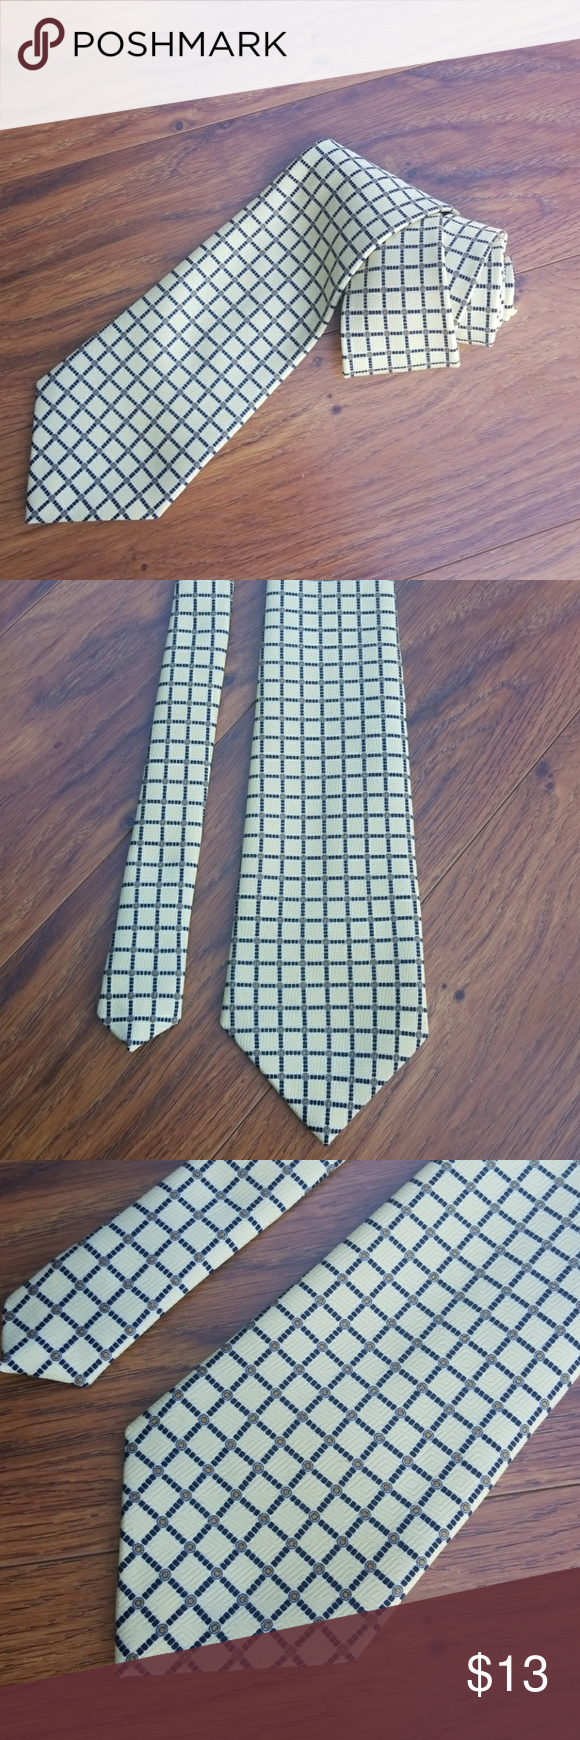 Tie by Marco Polo Nwot tie by Marco Polo 100 Poly 3.75x56